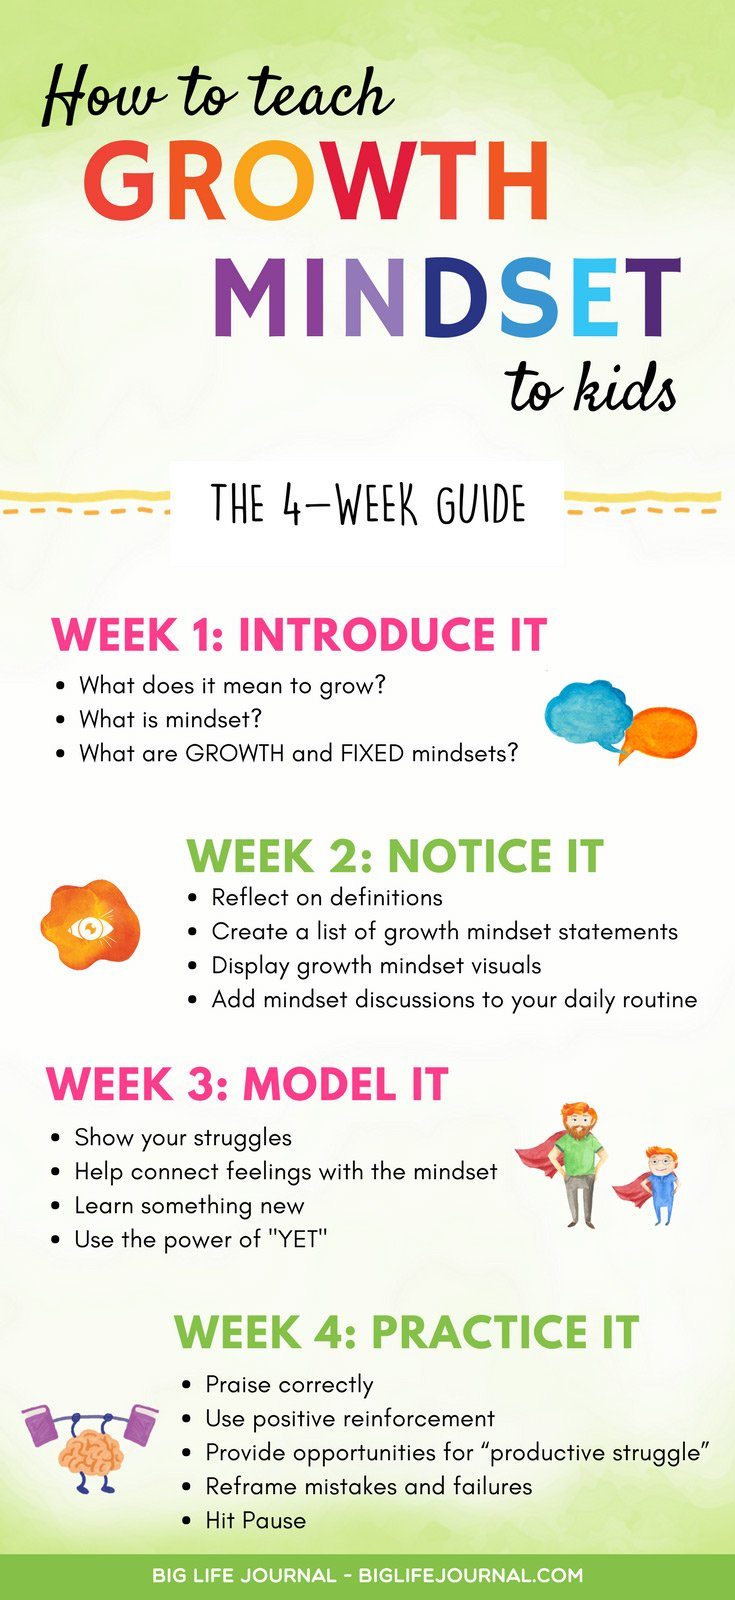 growth mindset 4 week guide - big life journal